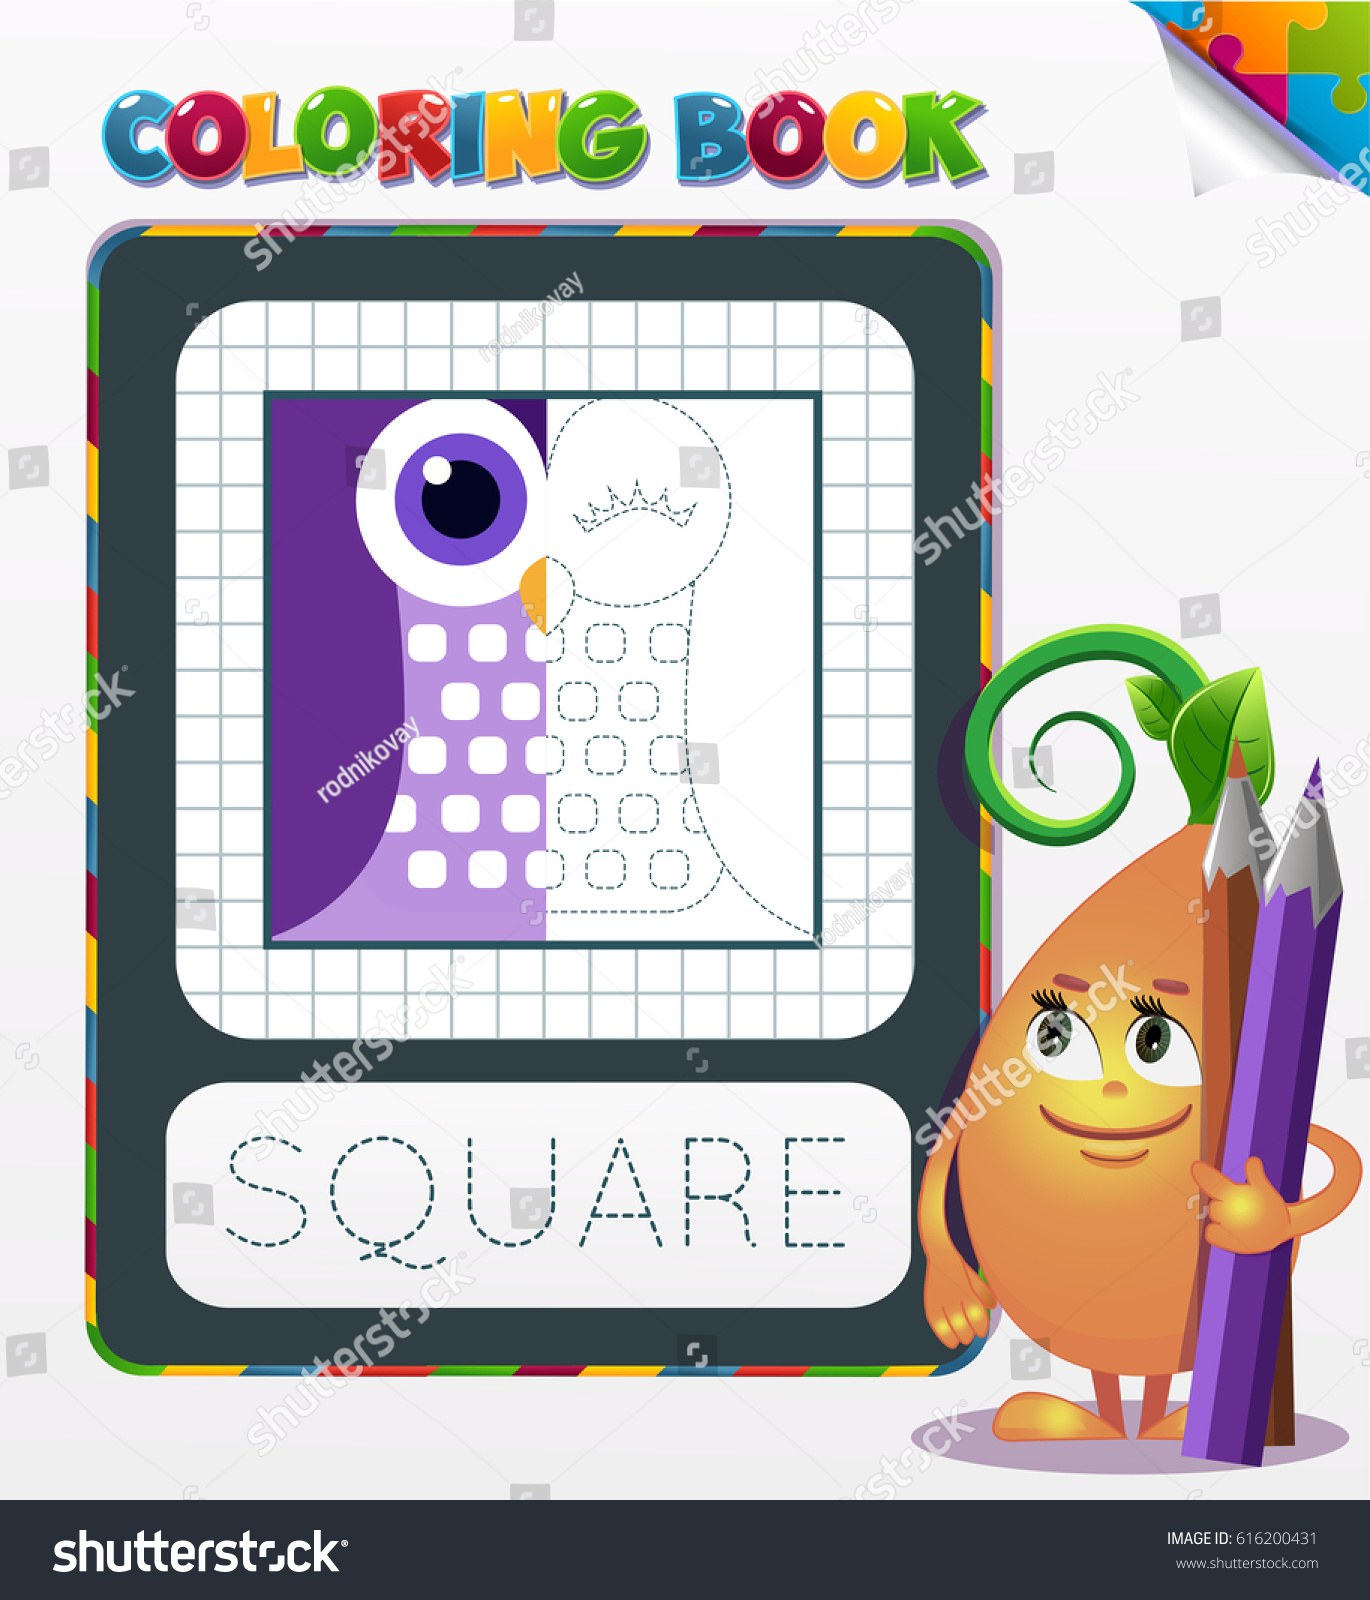 Half Colored Geometric Form The Coloring Book To Educate Preschool Kids Kid Educational